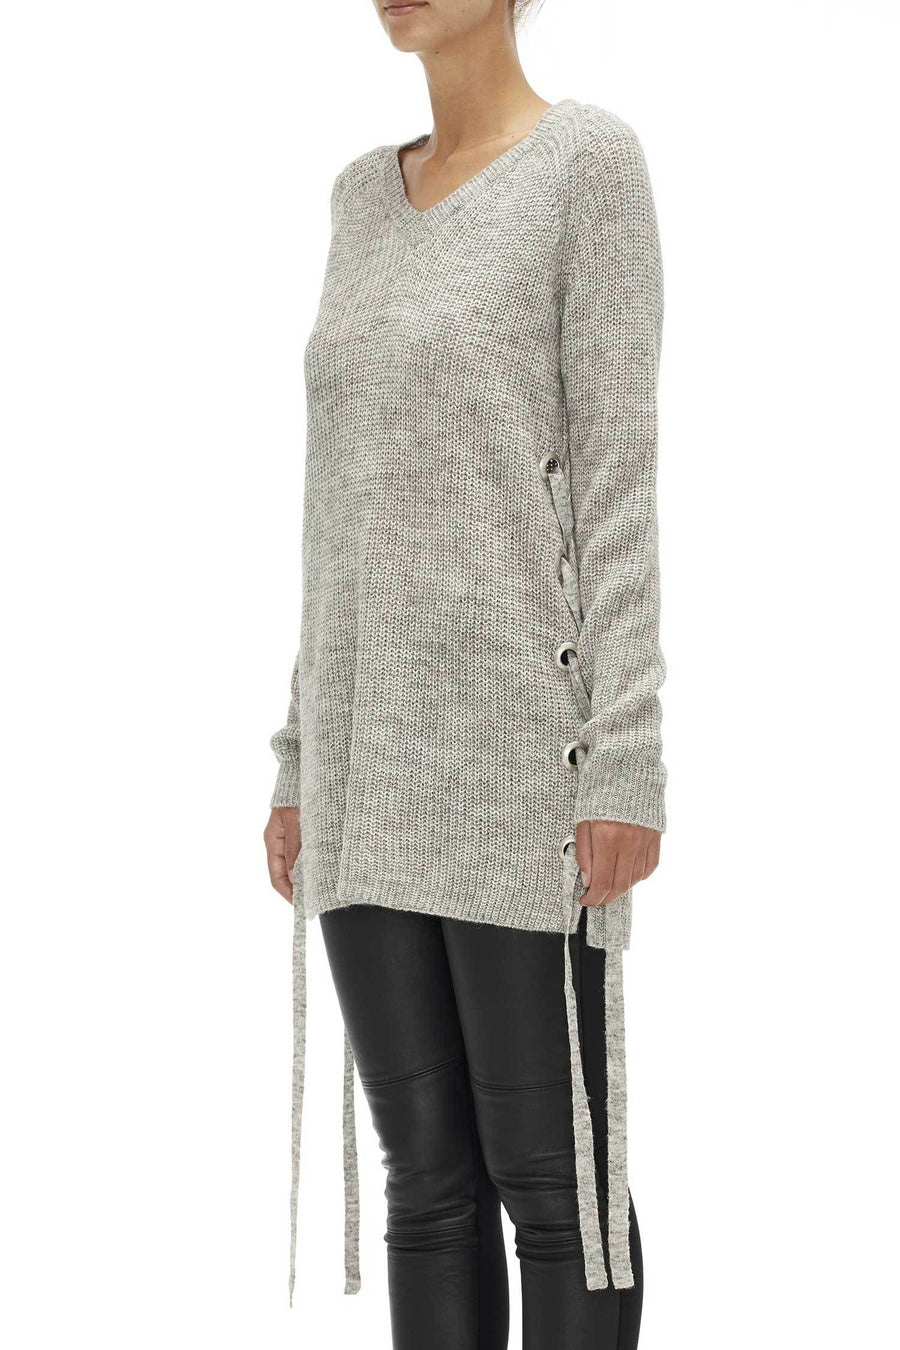 Shop Online Eyelet Lace Up Jumper in Pebble Grey by Sabatini  Frockaholics Tops